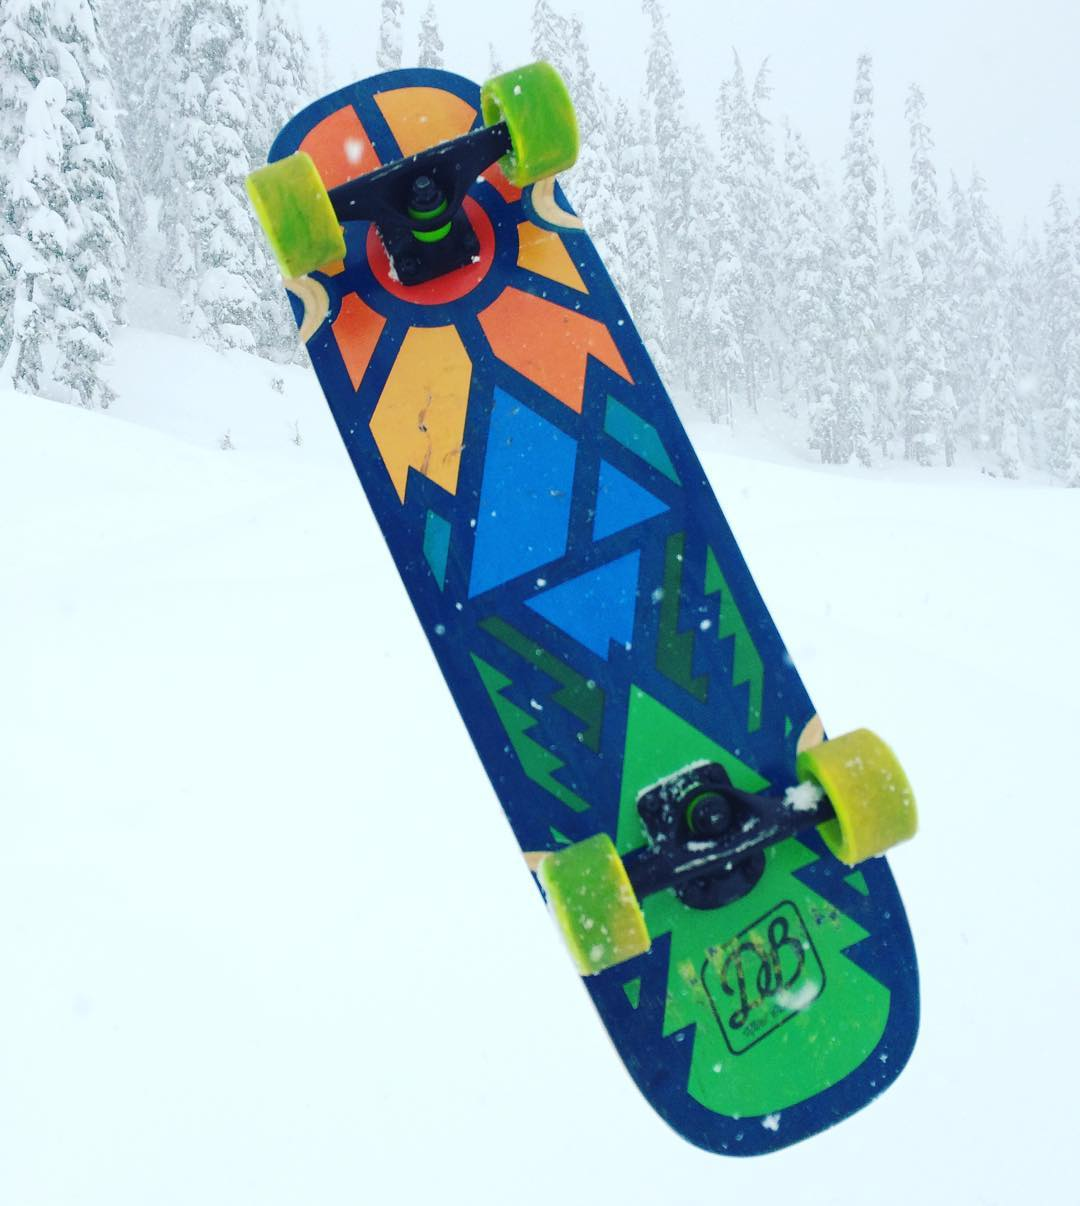 The Timber Mini Cruiser enjoying a visit to Snoqualmie Pass.